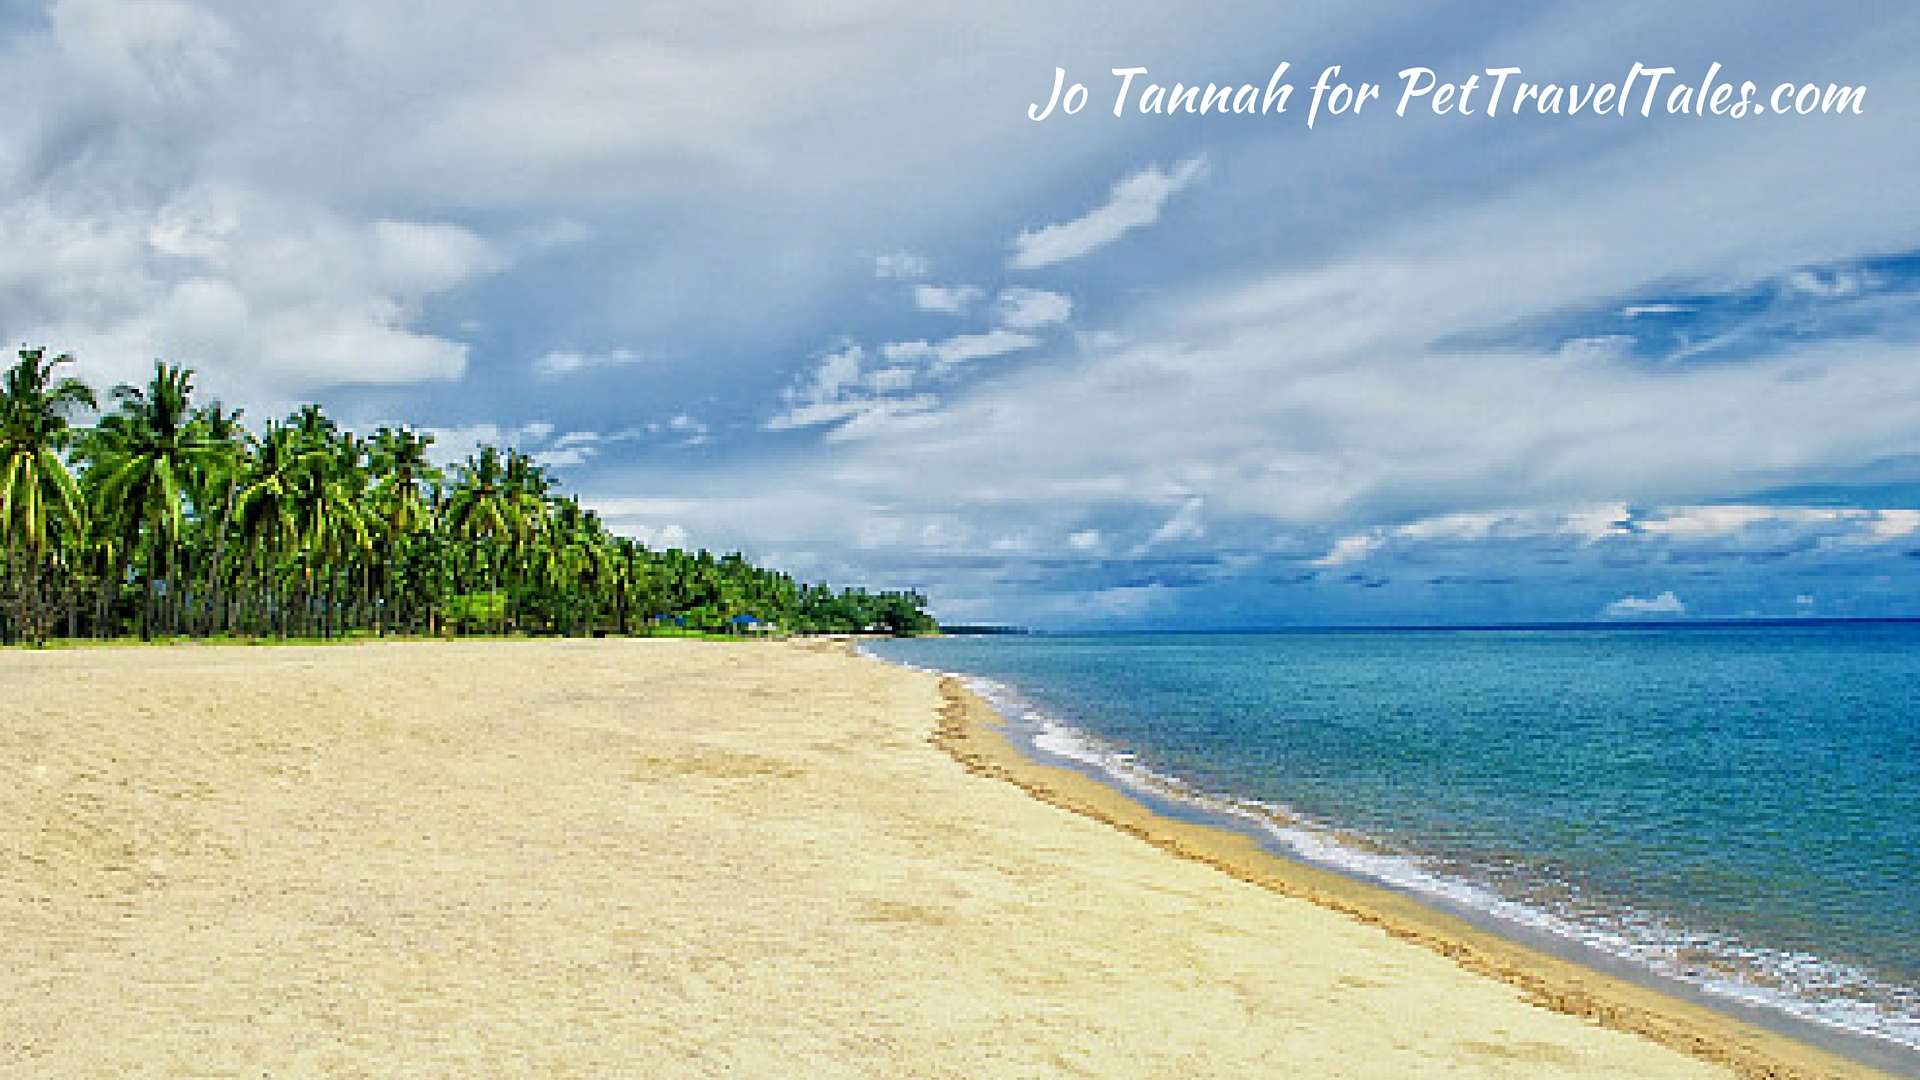 Hinoba-an Beach, the Philippines